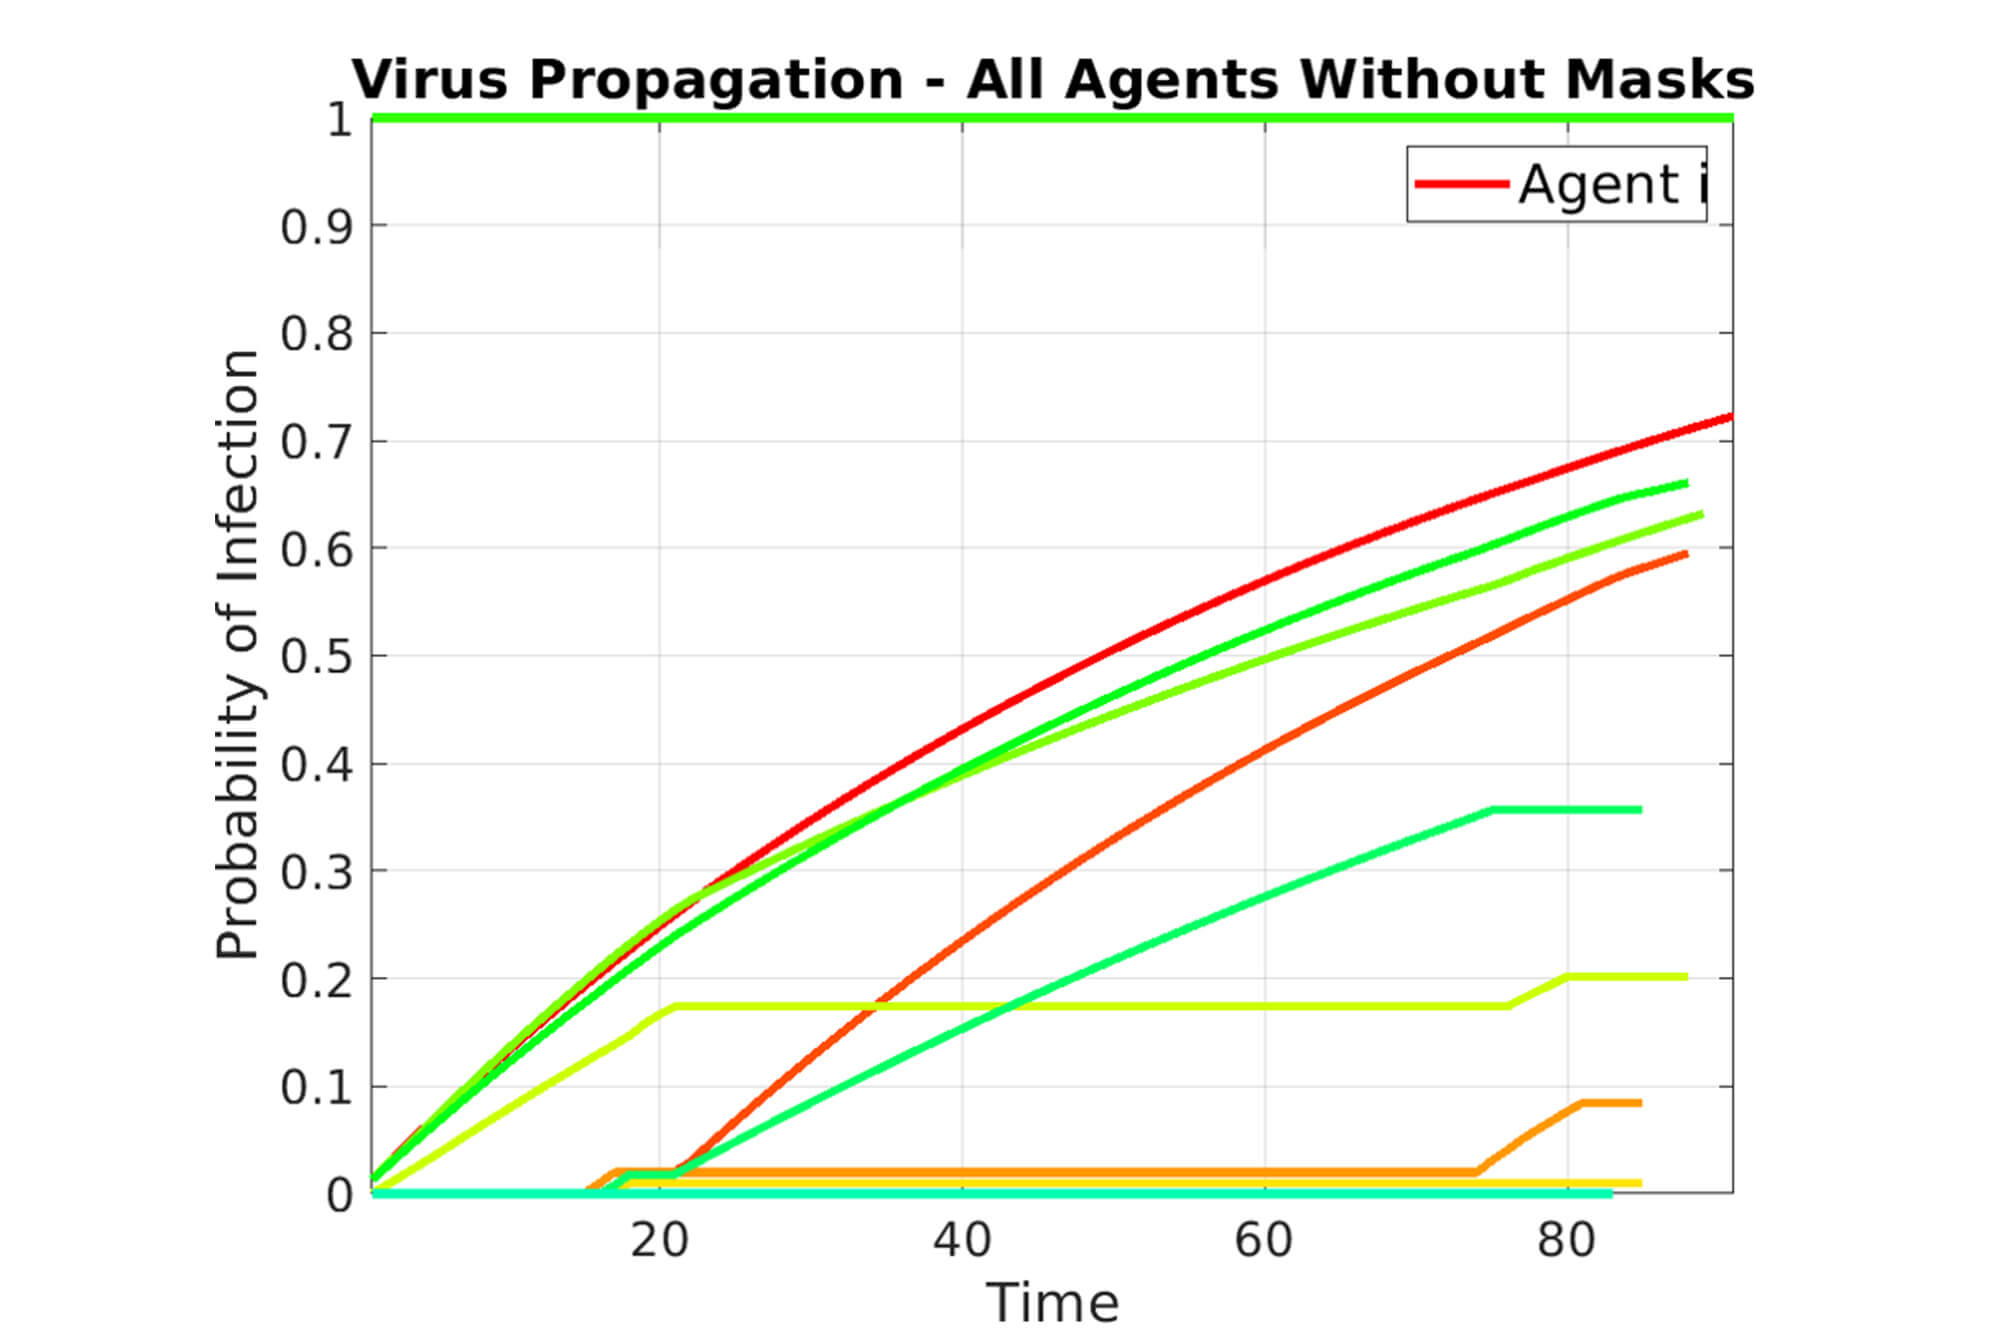 A line graph to show time against probability of infection with all agents without masks